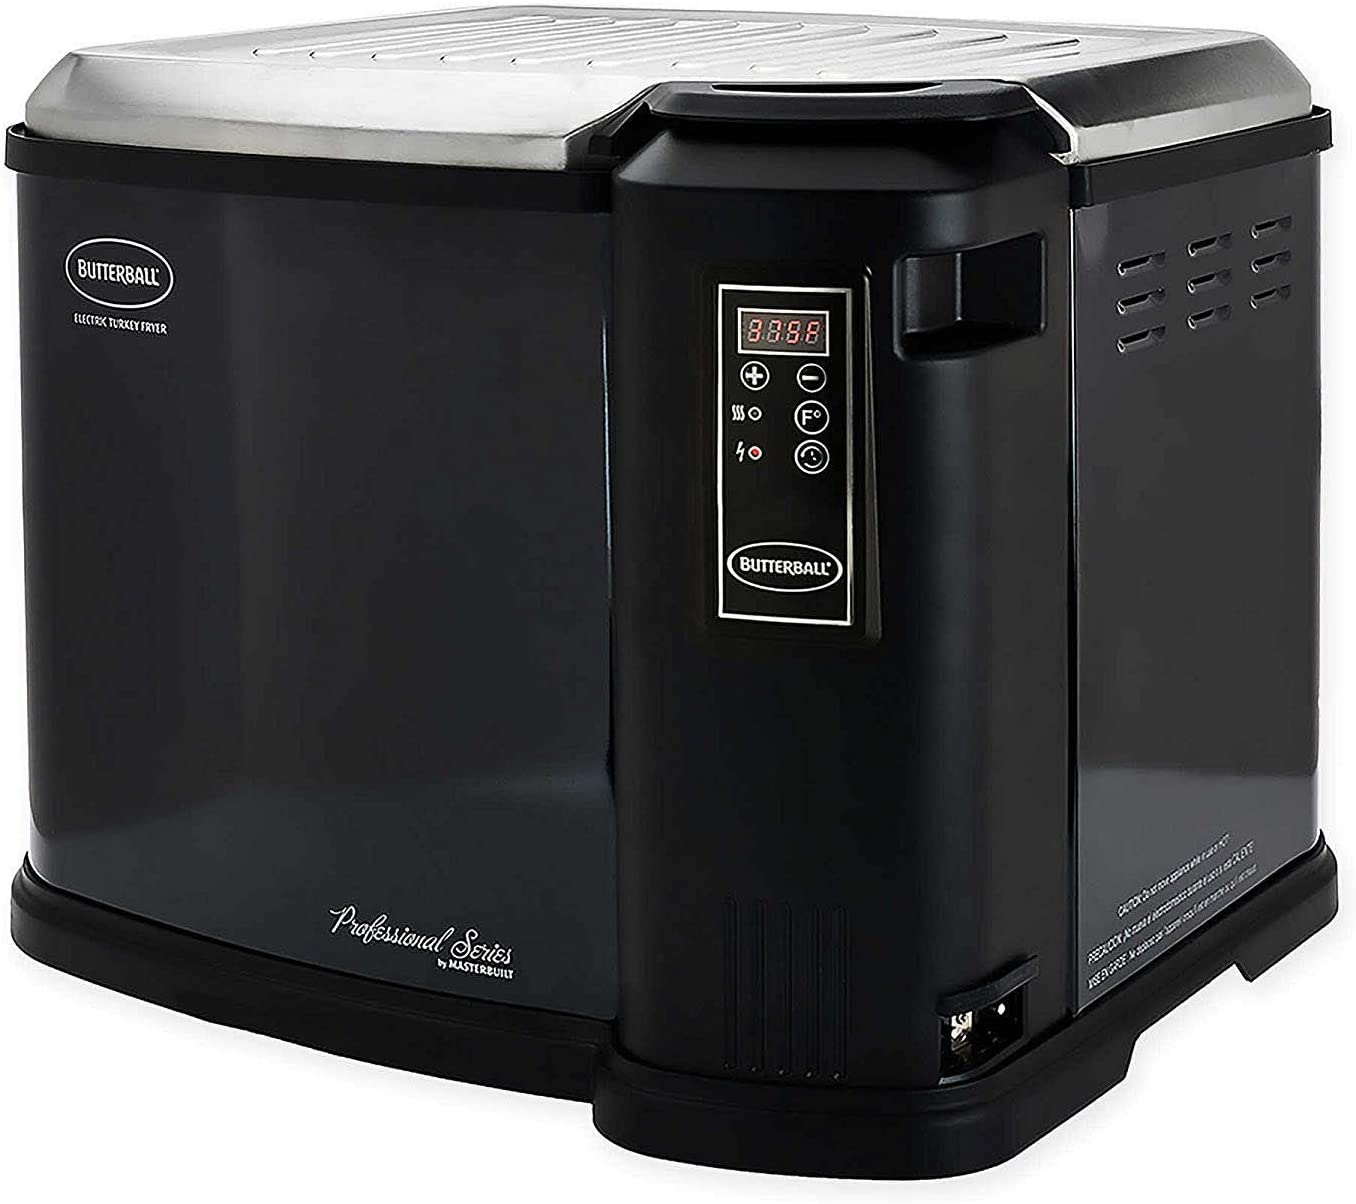 Butterball Masterbuilt MB23011818 XXL 1650W Indoor Digital Electric 22-Pound Turkey Fryer with Accessories, Black